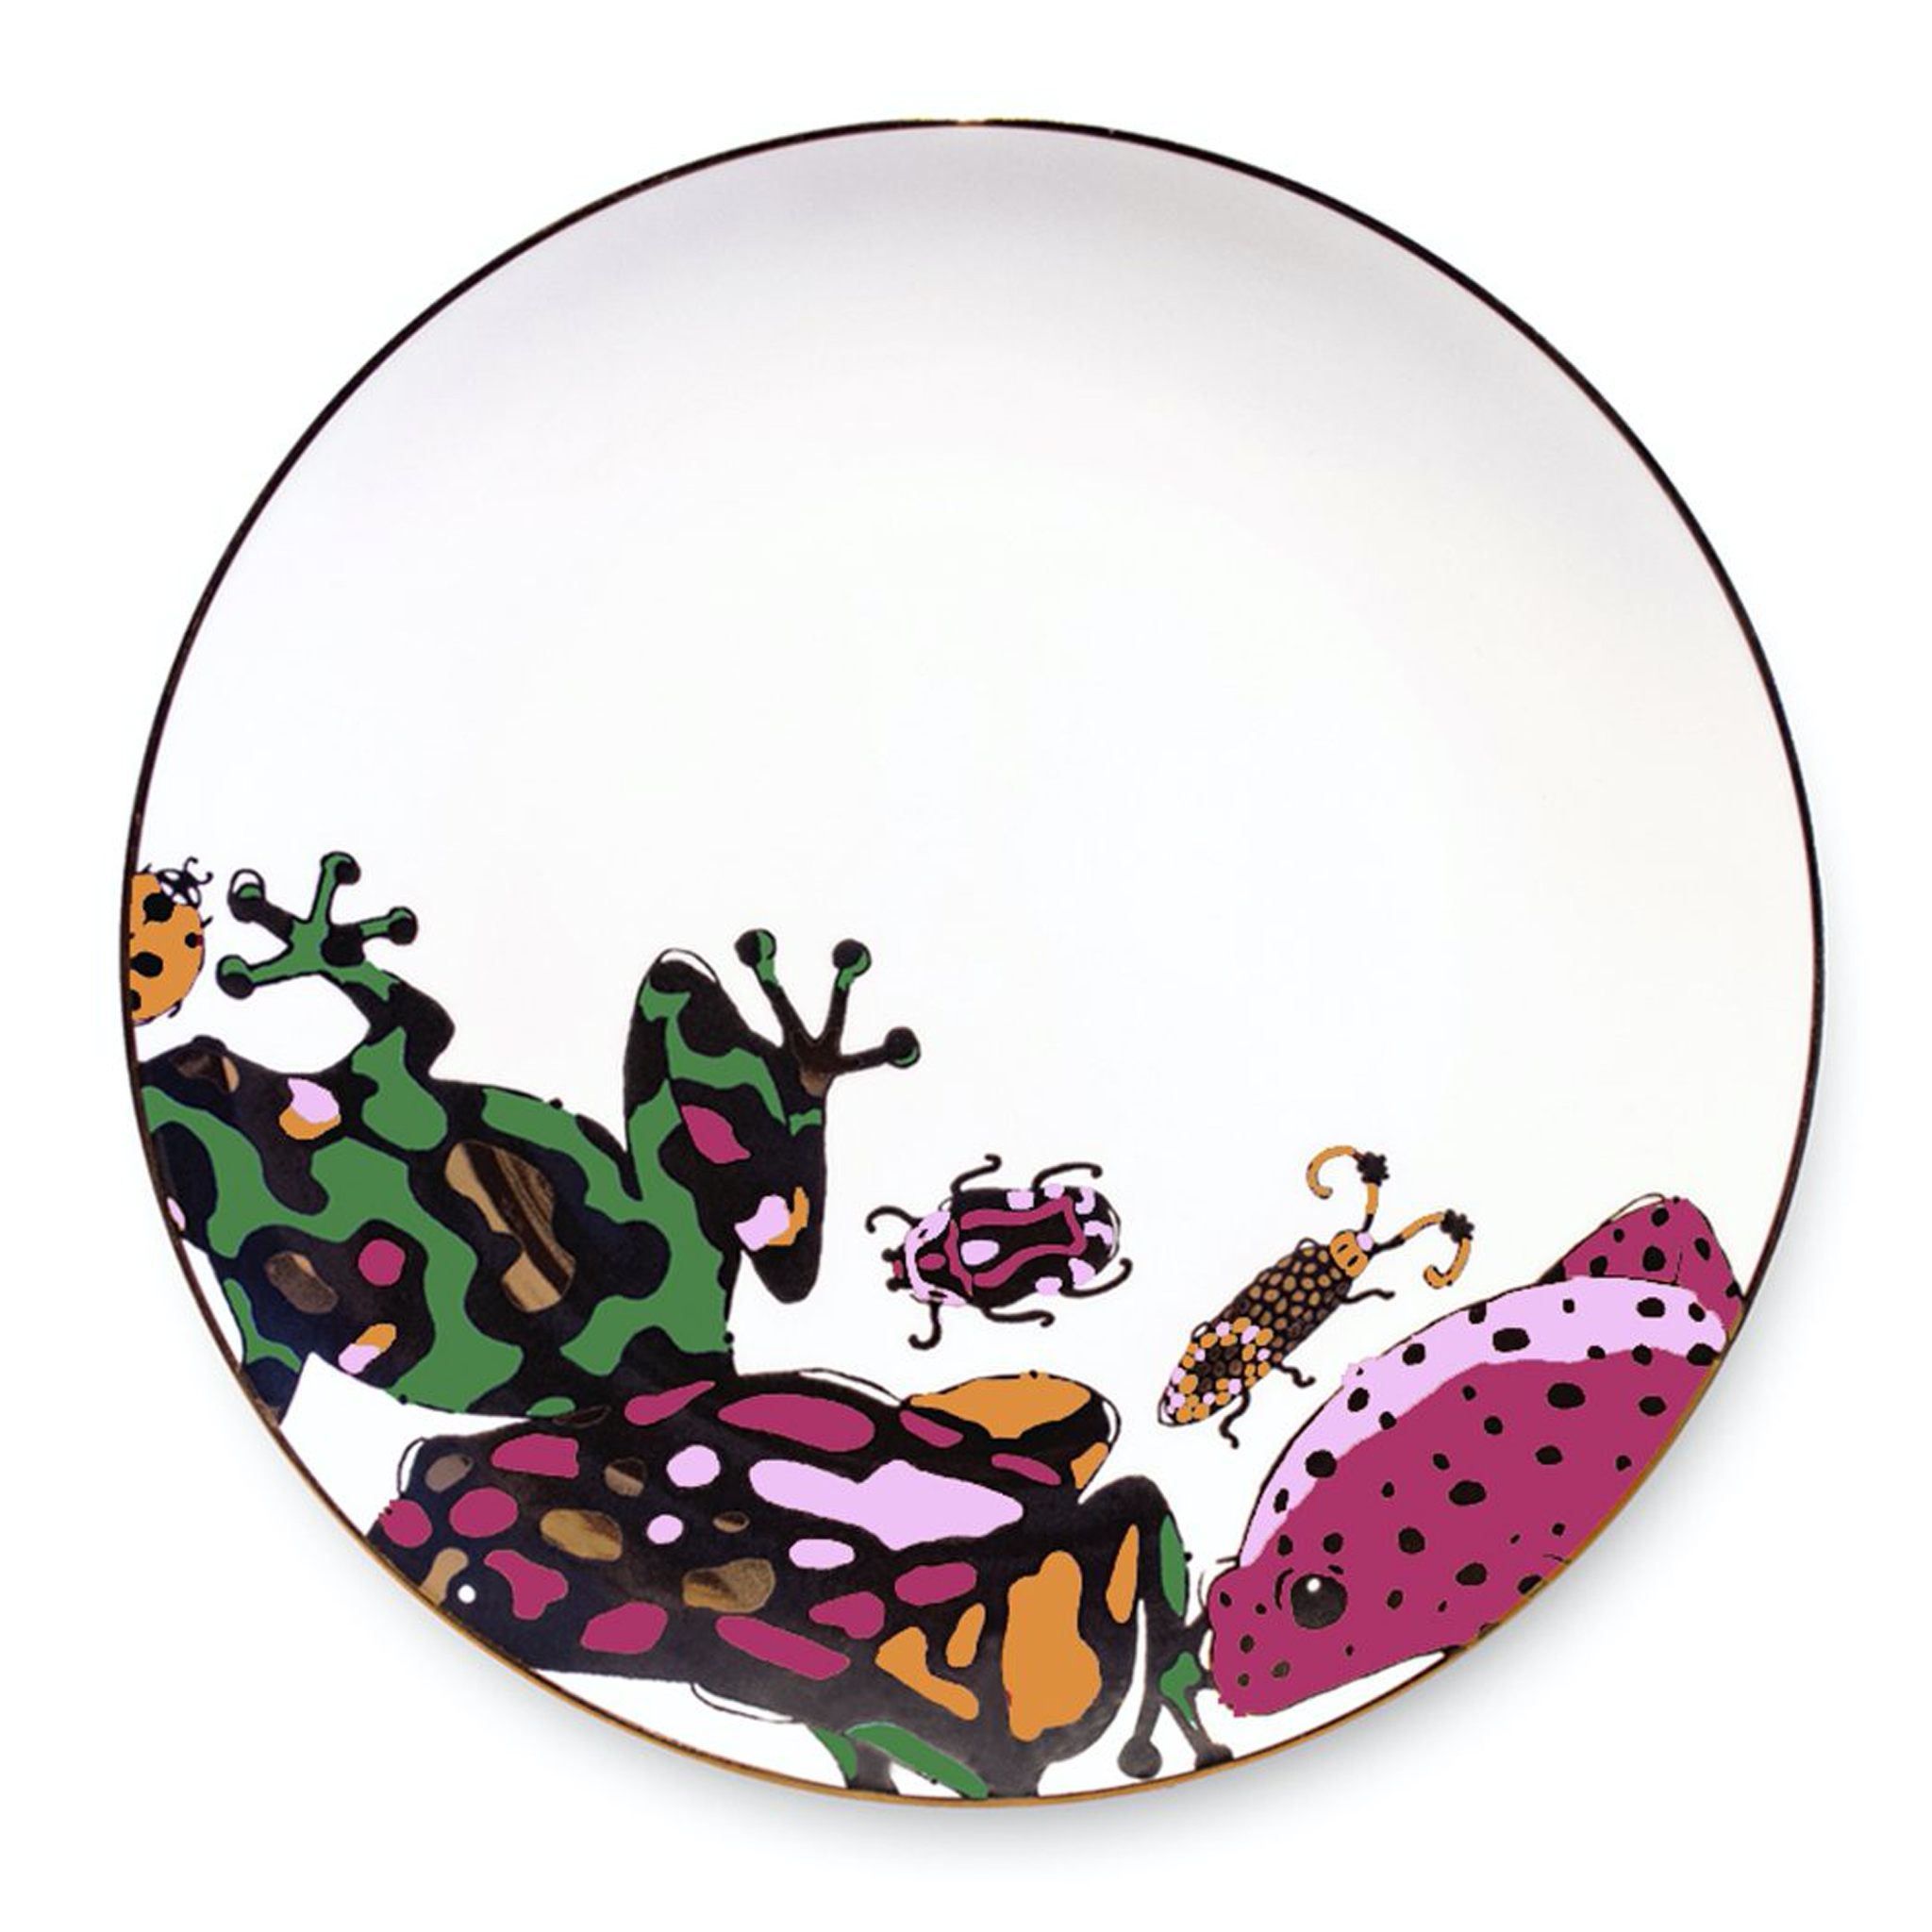 bold vibrant colourful playful frog print china plate aase hopstock